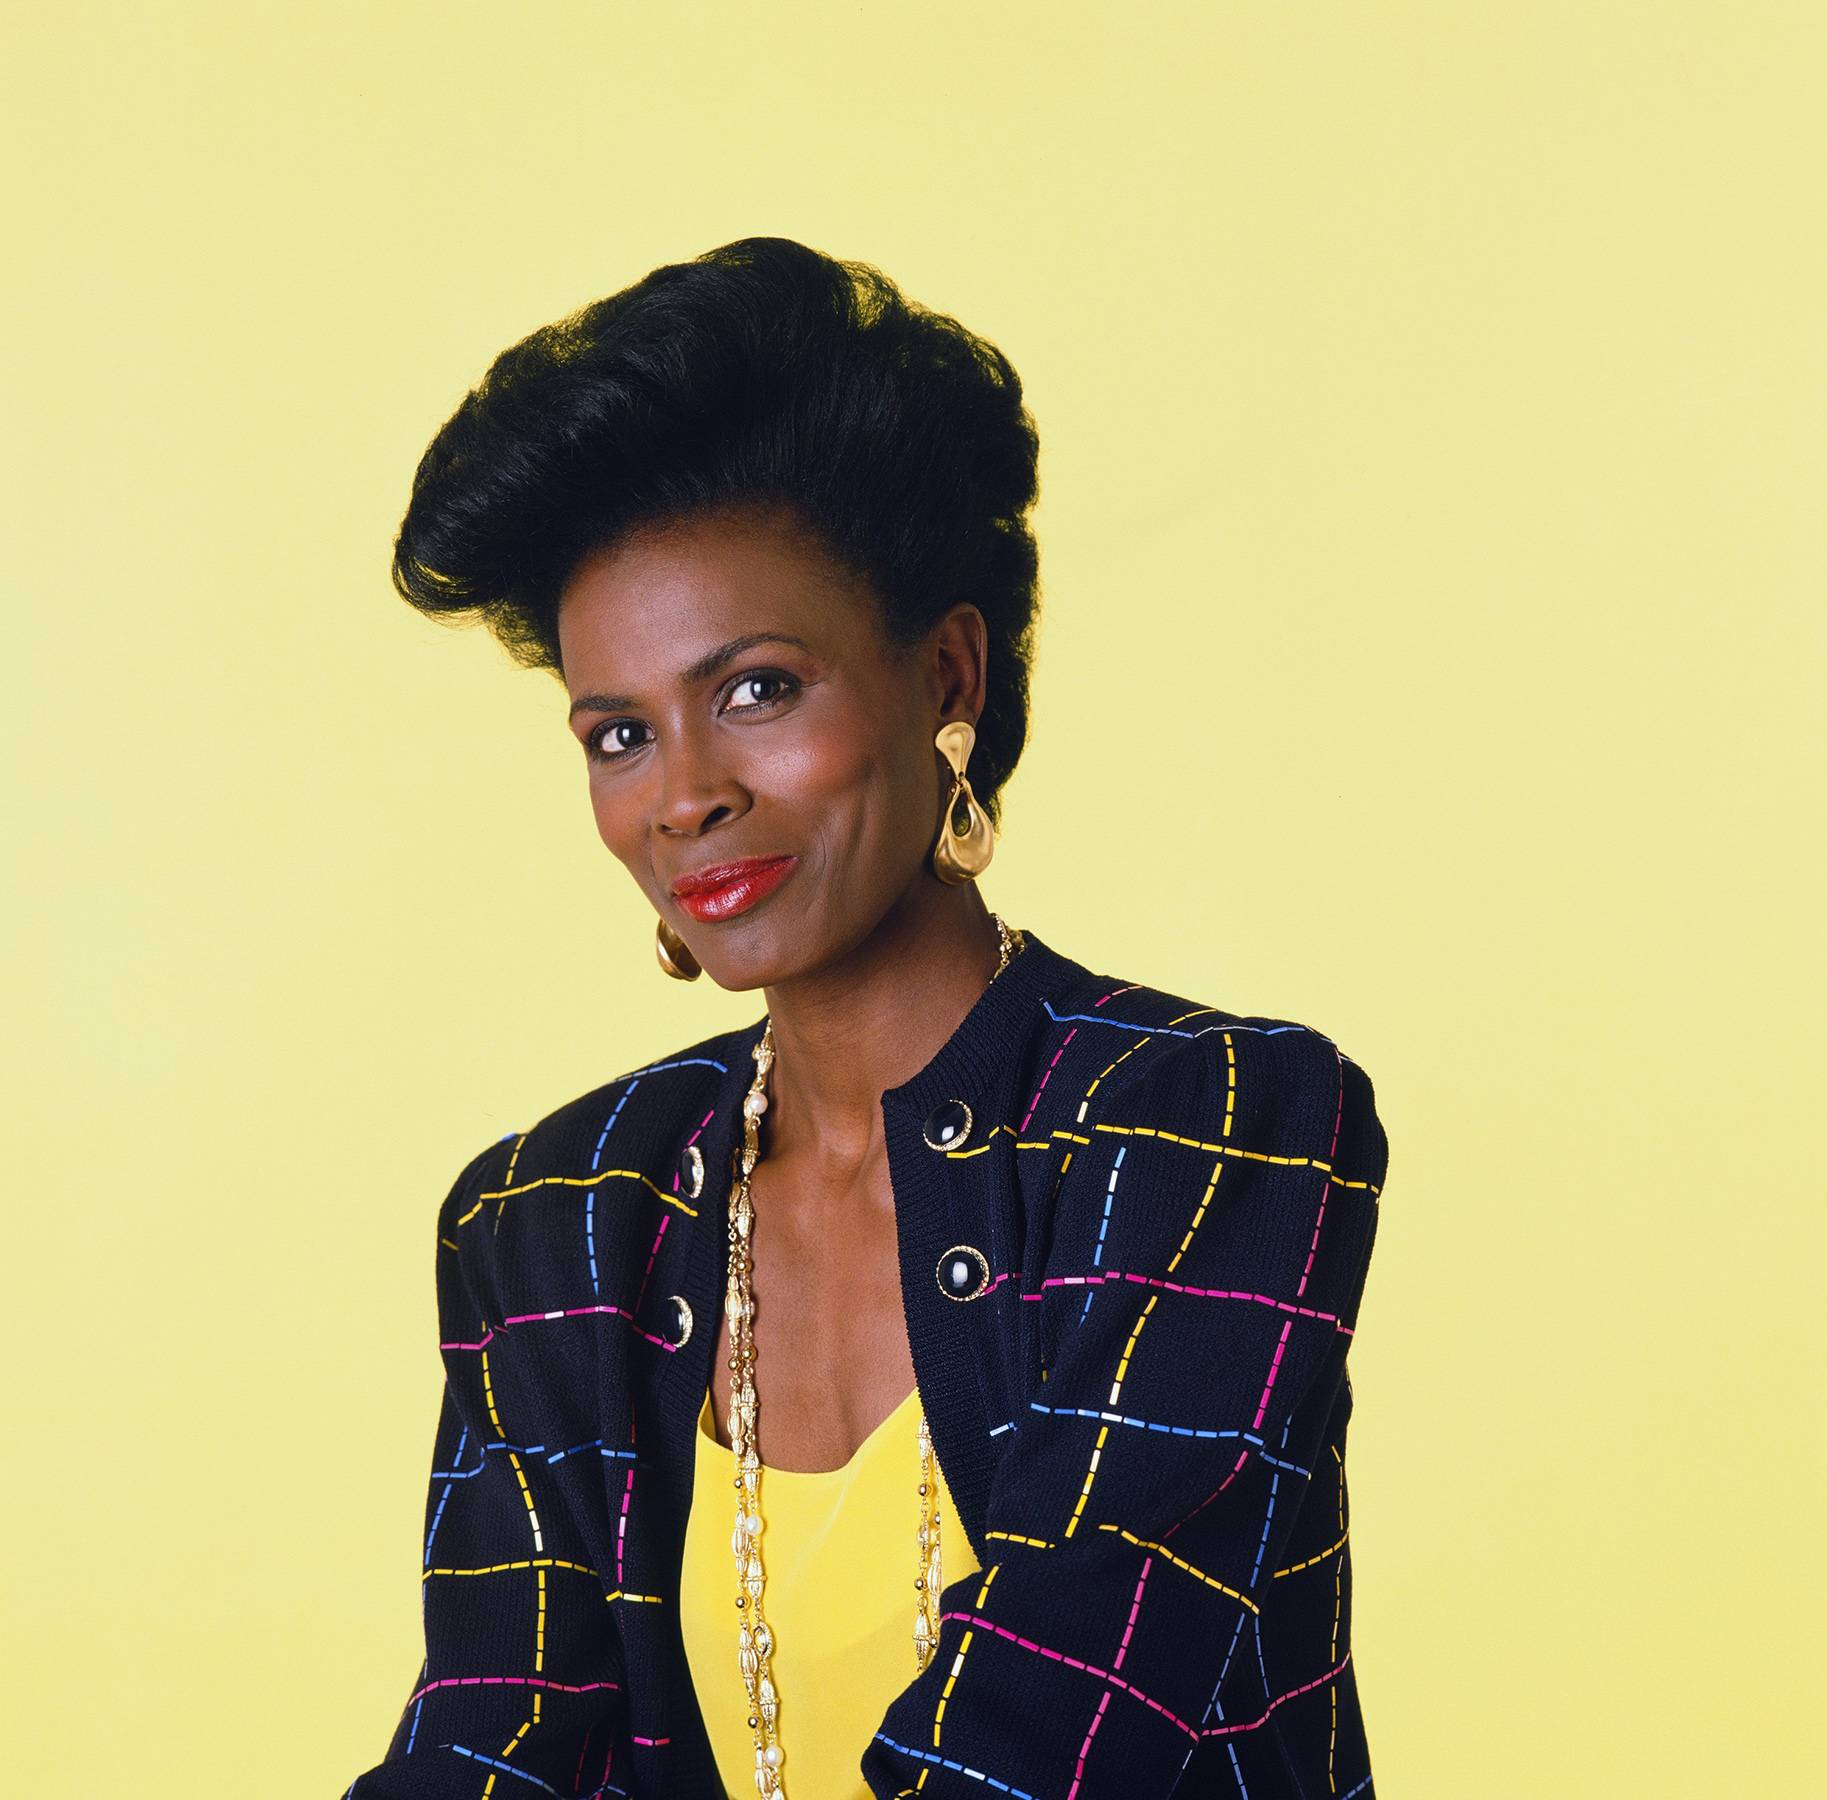 Janet Hubert - As Vivian Banks, the aunt of The Fresh Prince of Bel Air's Will Smith, actress Janet Hubert brought, elegance, style and know-it-all sass to her role as mom of the Banks clan. Like Rashad before her, Hubert proved that upper middle class Black moms could have and do it all; juggle a family, successful career and enjoy a loving relationship with her professional husband.  (Photo: Chris Cuffaio/NBCU Photo Bank)